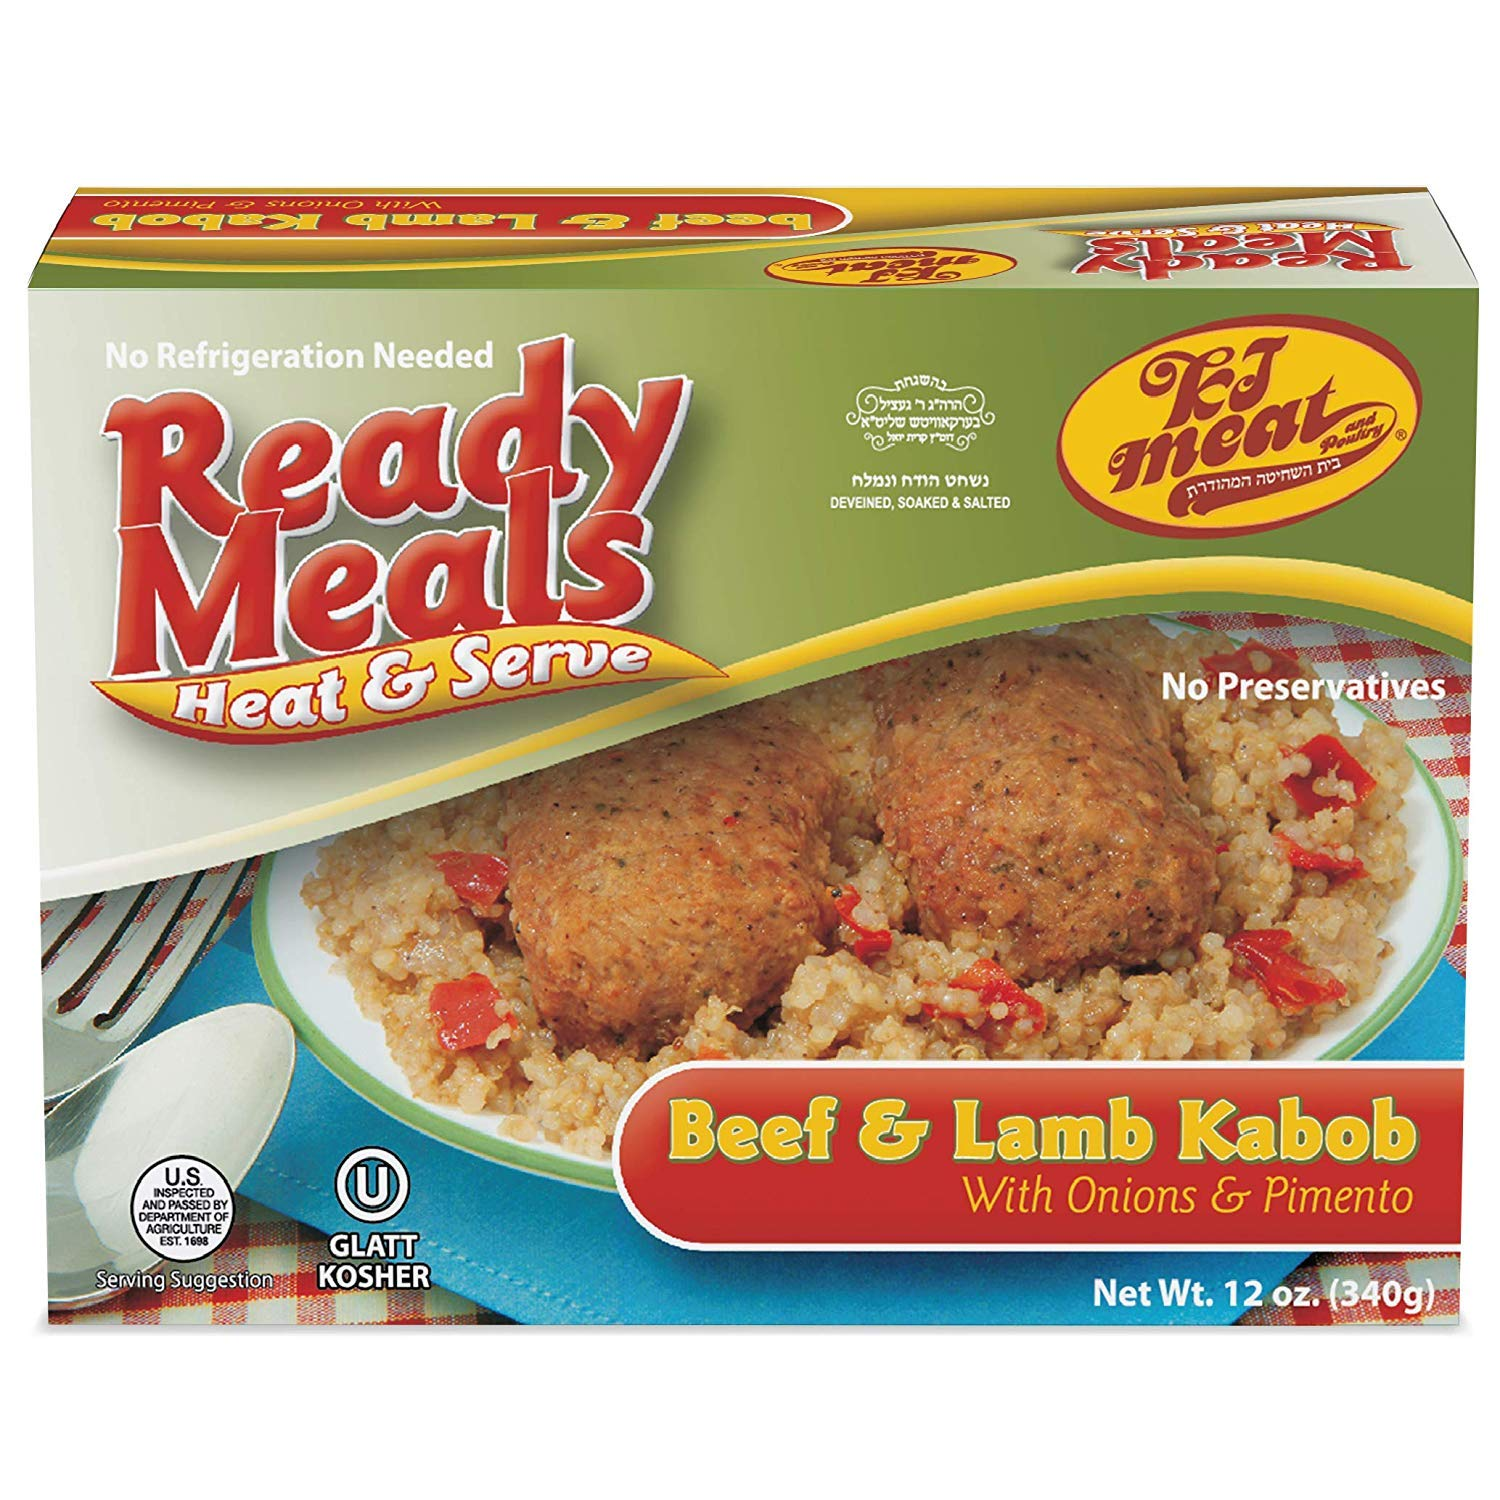 Kosher Meals Ready to Eat, Kosher Beef & Lamb Kabob with Onions & Pimento (Microwavable, Shelf Stable) - Dairy Free - Glatt Kosher (12 ounce - Pack of 1) by KJ Poultry